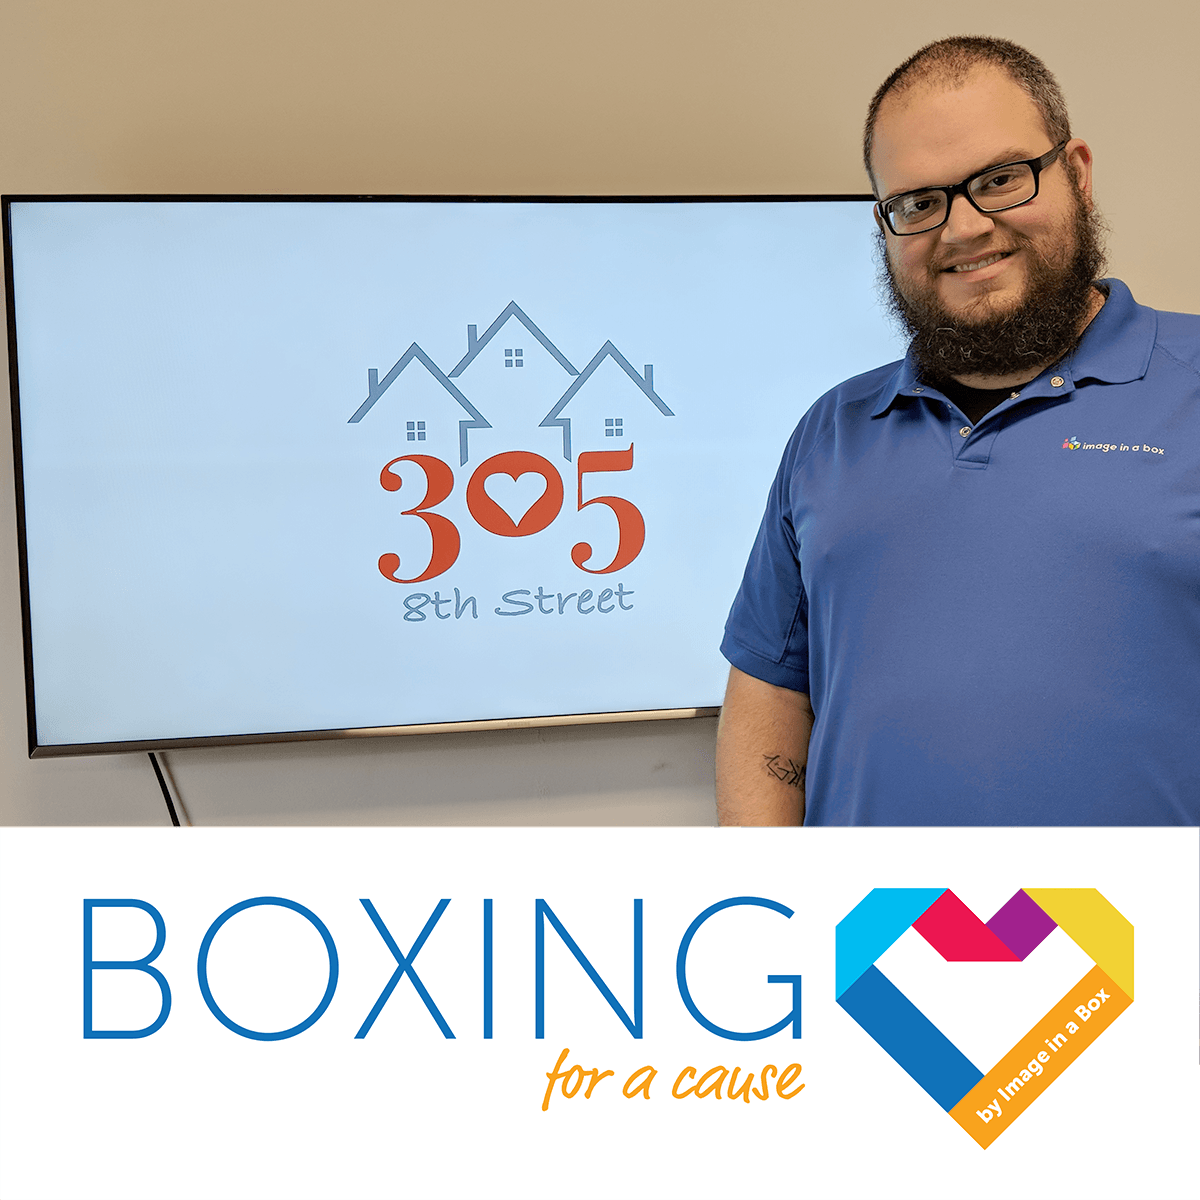 Featured image on Boxing for a Cause - 305 8th Street - August 2018